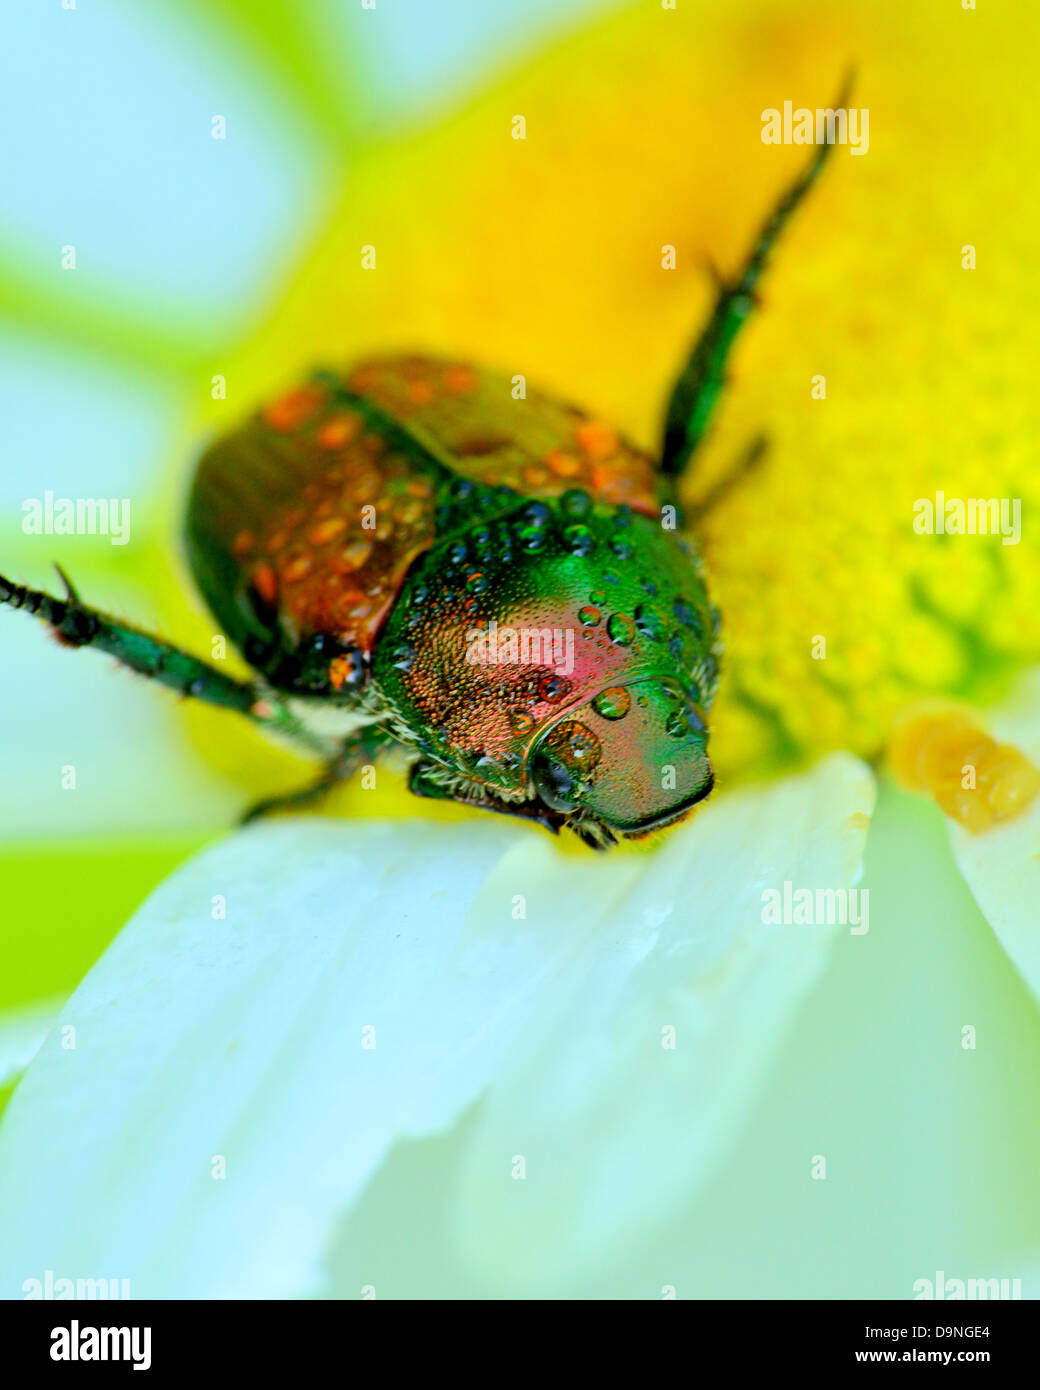 A Japanese Beetle perched on a flower closeup head shot. - Stock Image